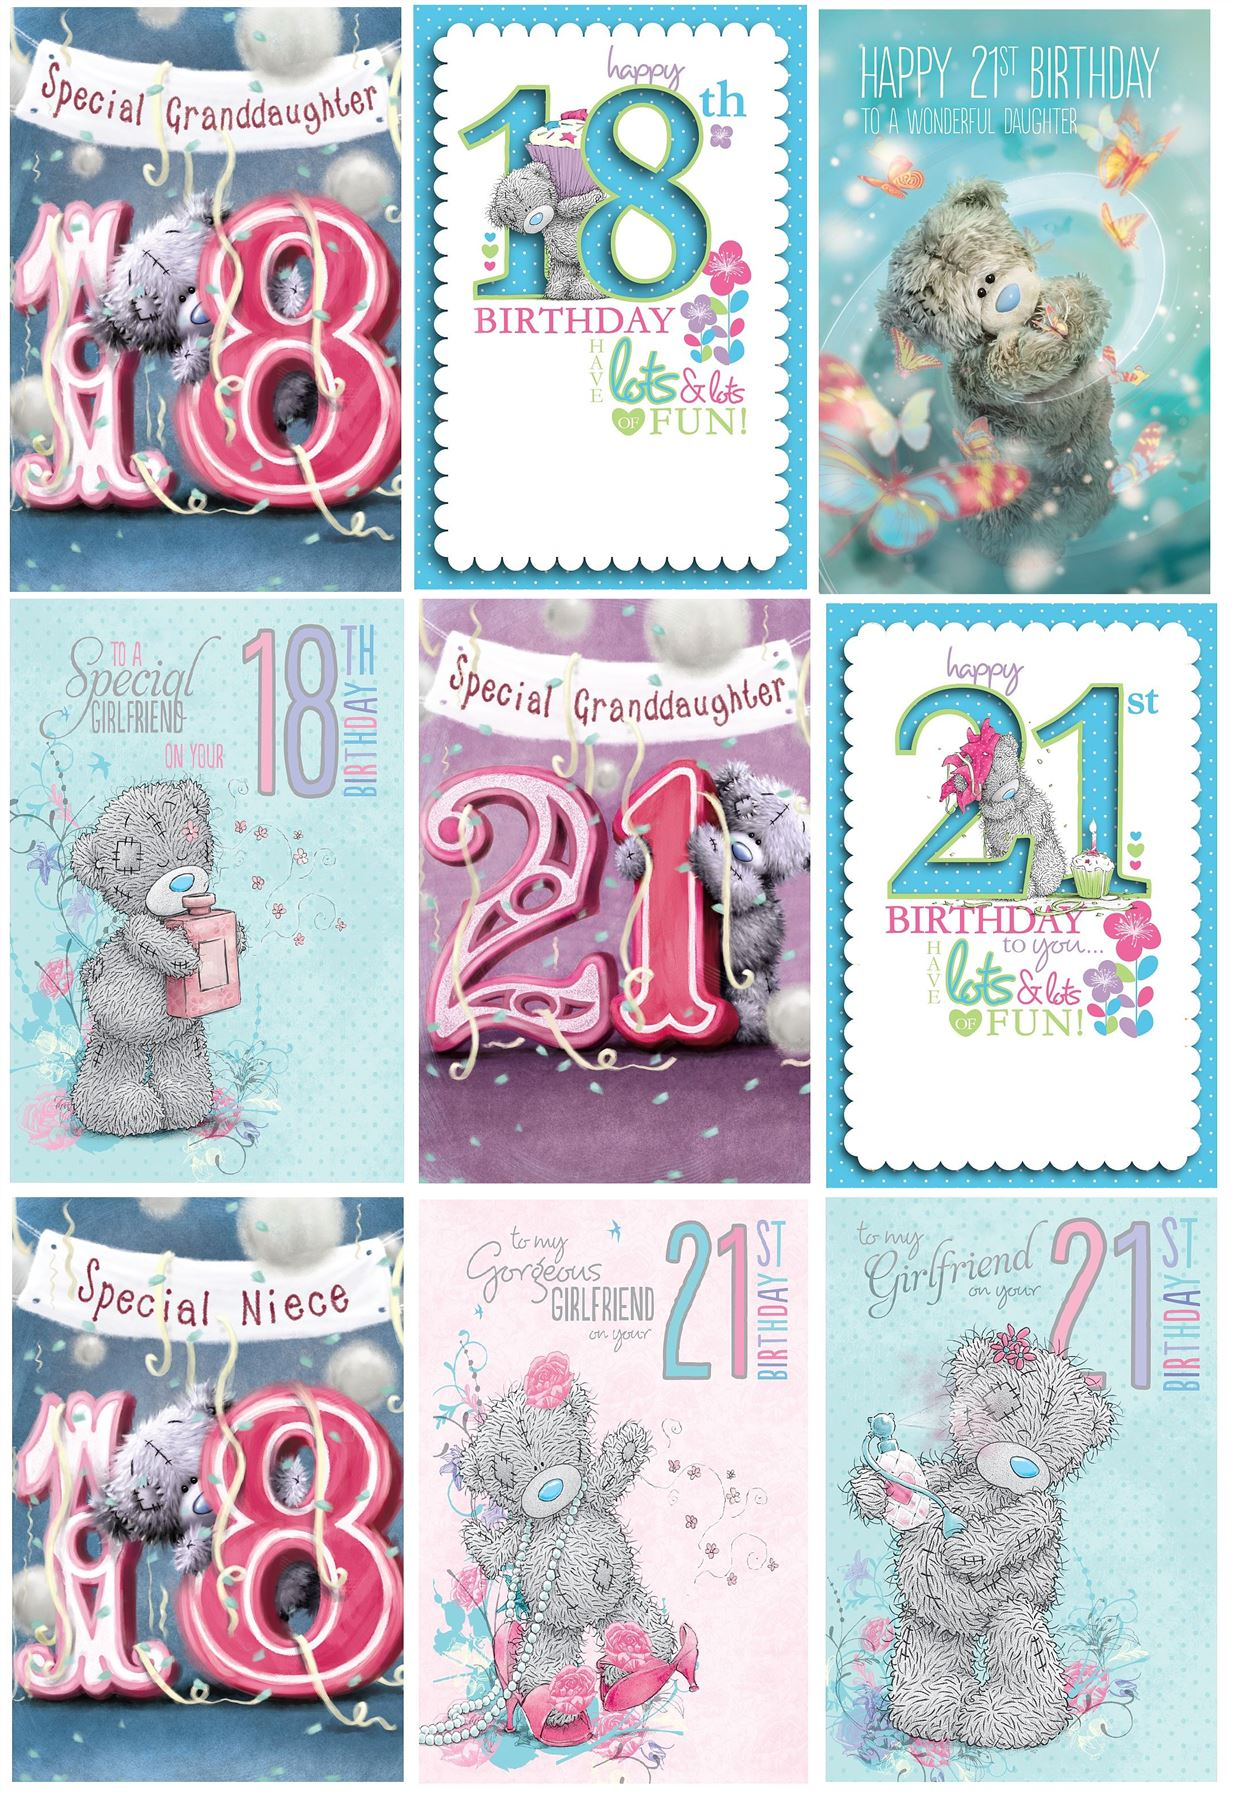 Elegant birthday cards for niece graphics laughterisaleap me to you birthday cards 18th 21st milestone birthday greetings kristyandbryce Image collections